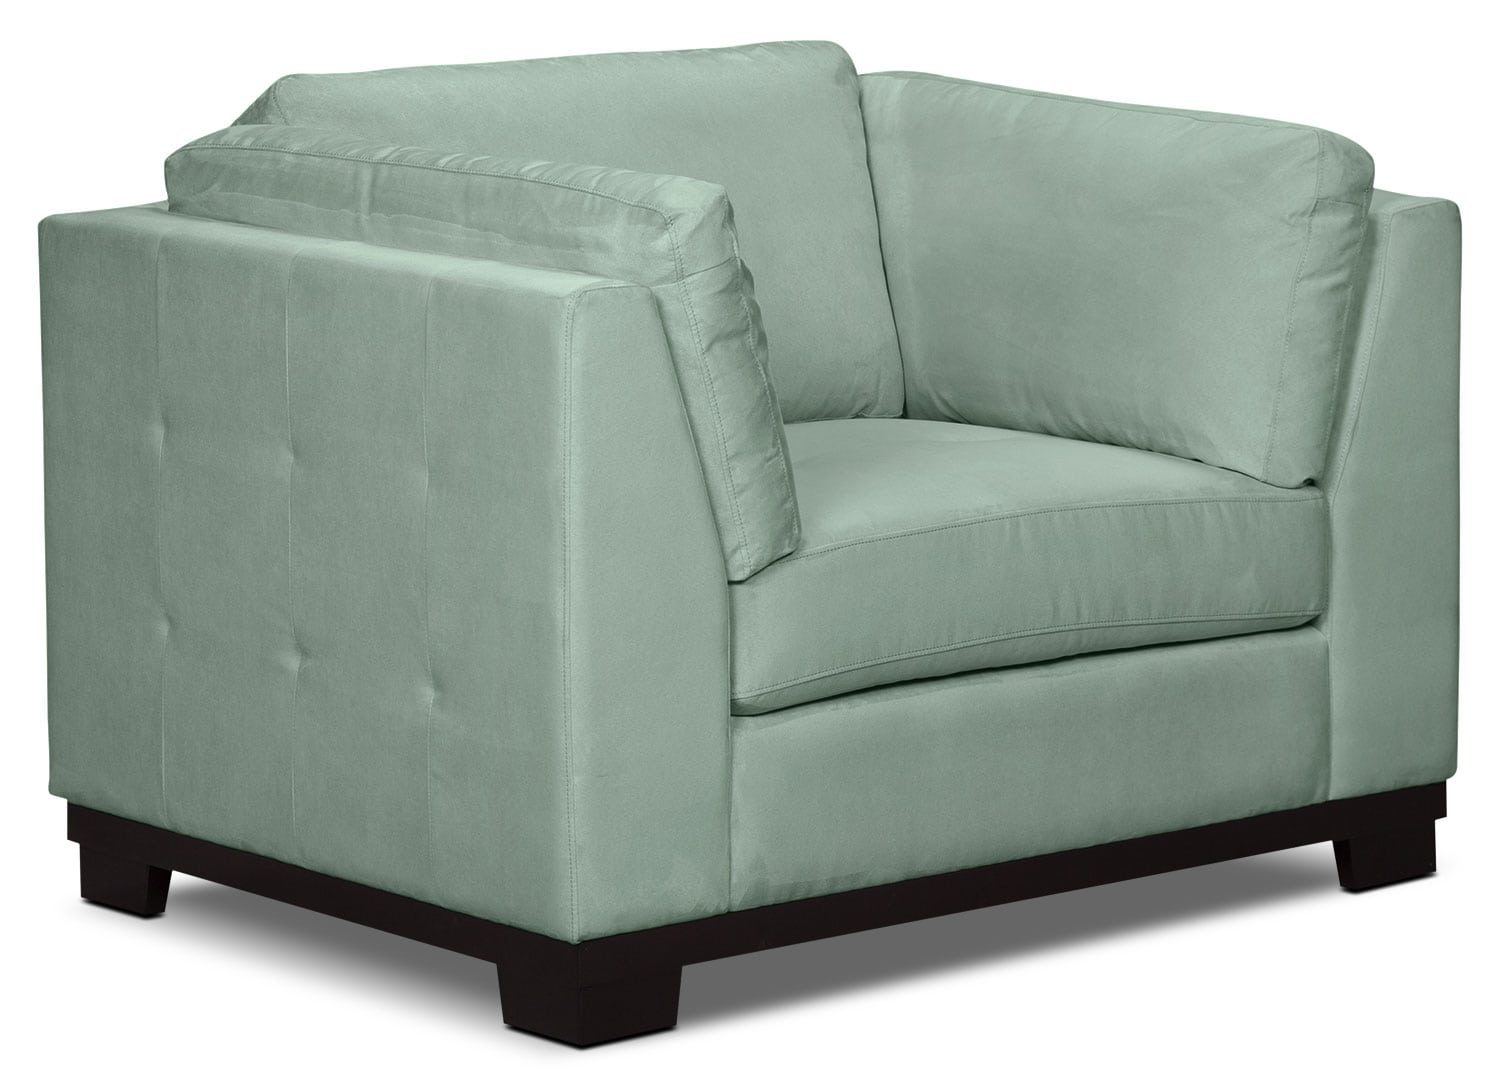 Oakdale Microsuede Chair-and-a-Half – Aqua